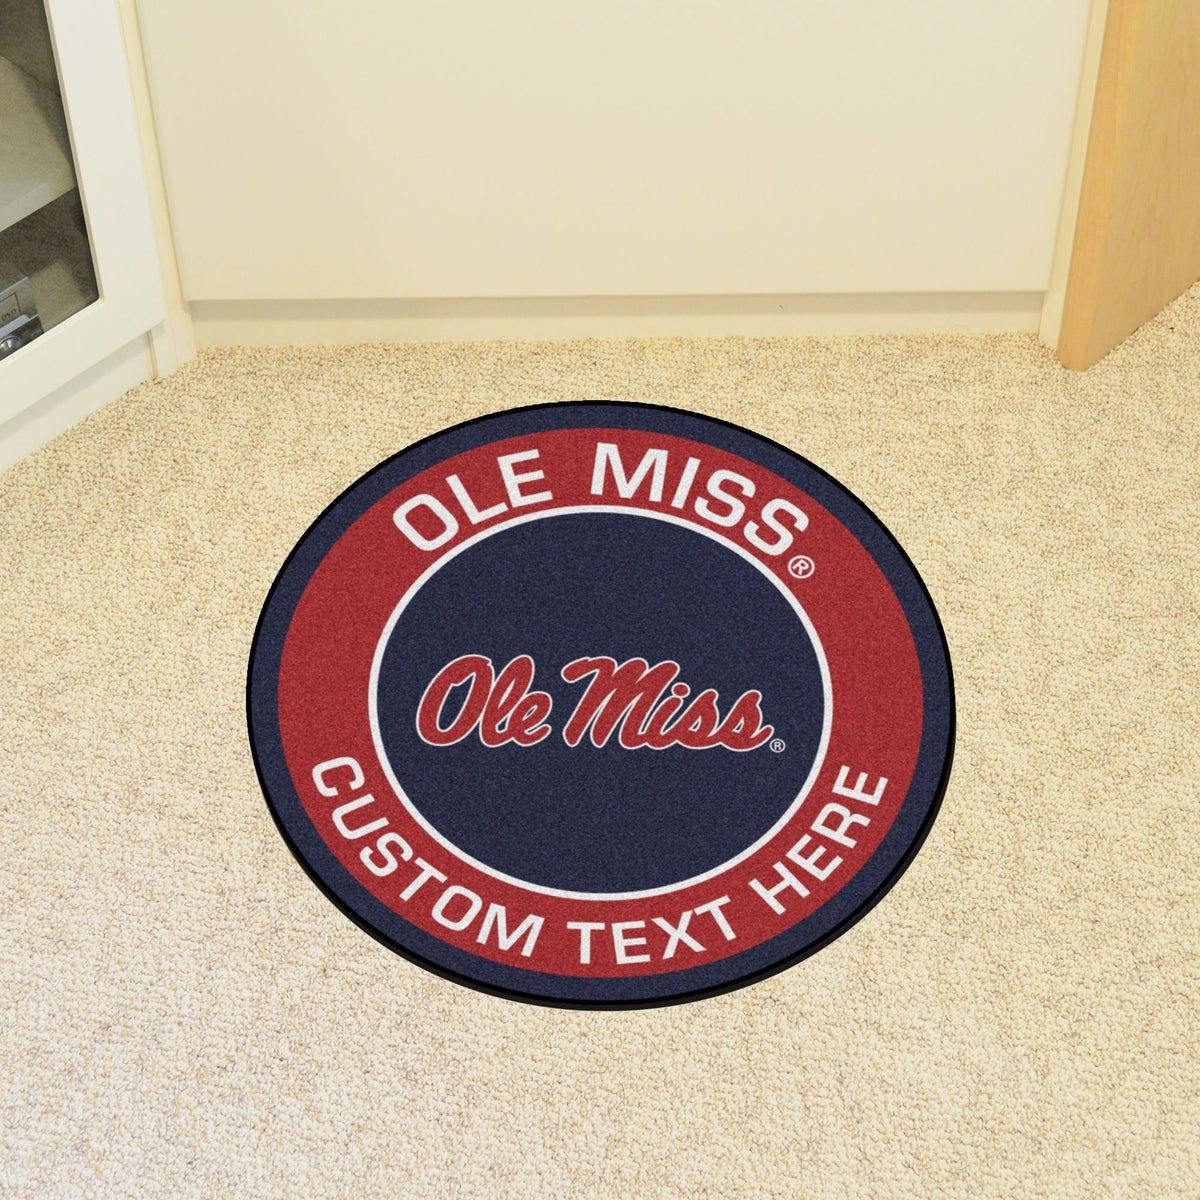 Collegiate Personalized Roundel Mat Personalized Roundel Mat Fan Mats University of Mississippi (Ole Miss)